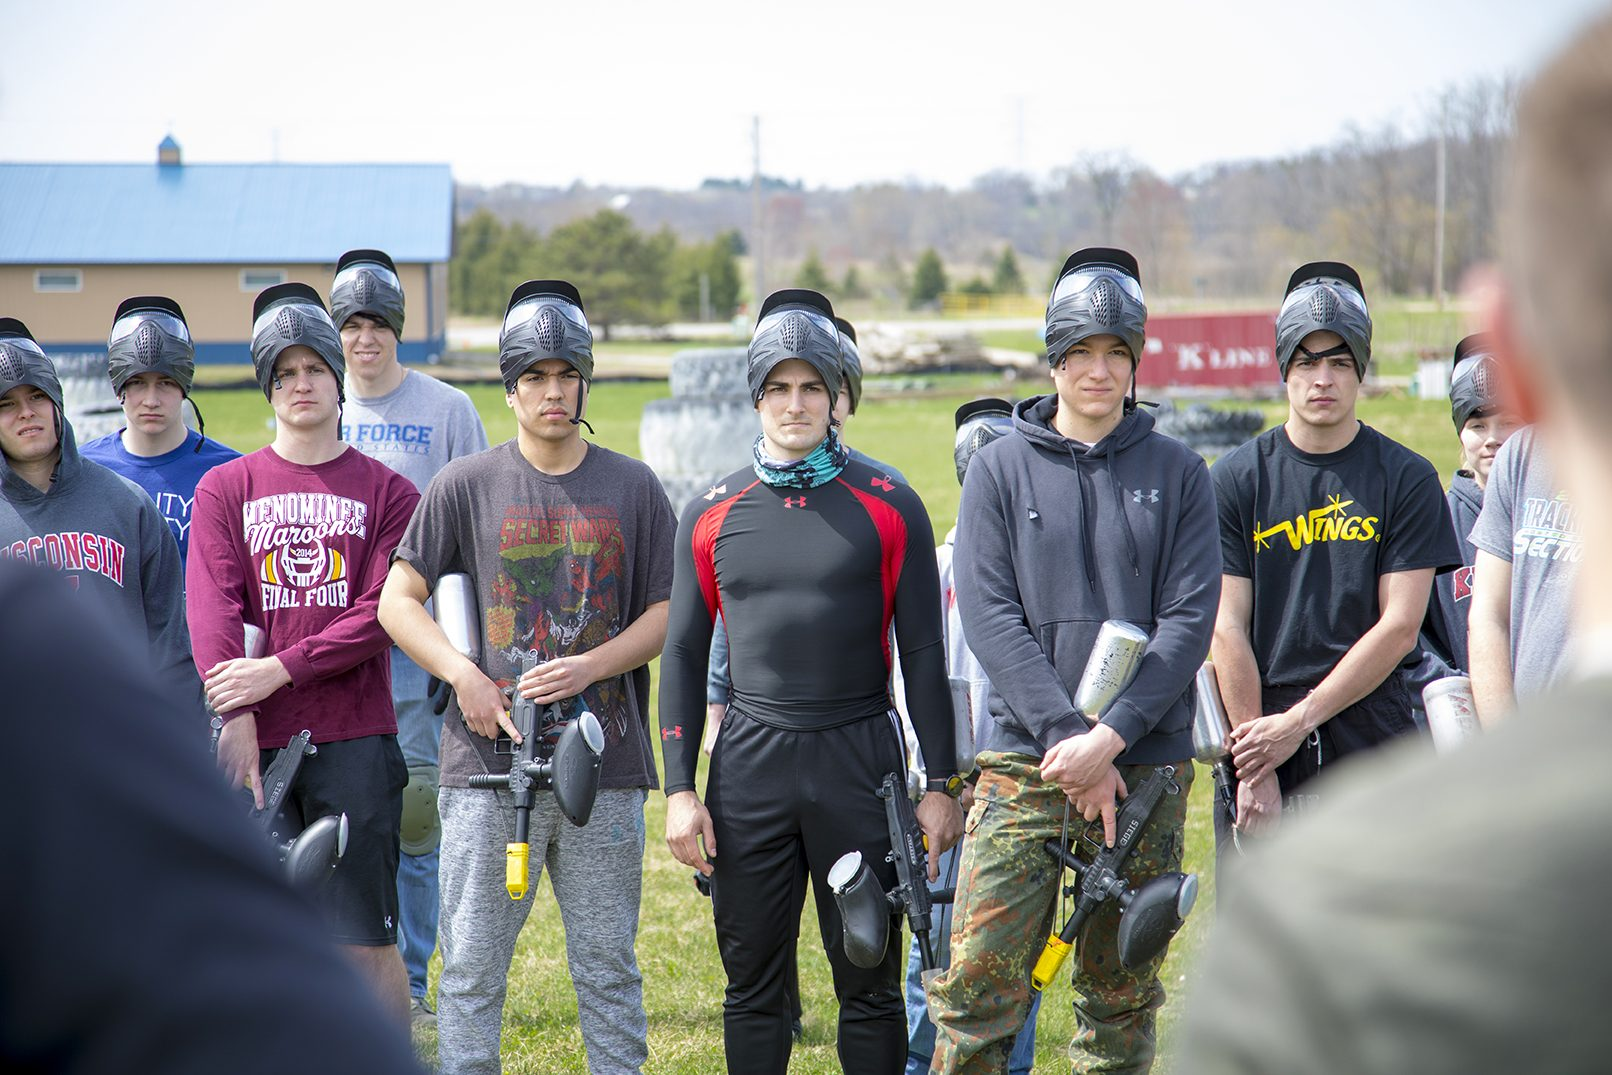 Air Force ROTC cadets and paintball training exercise.